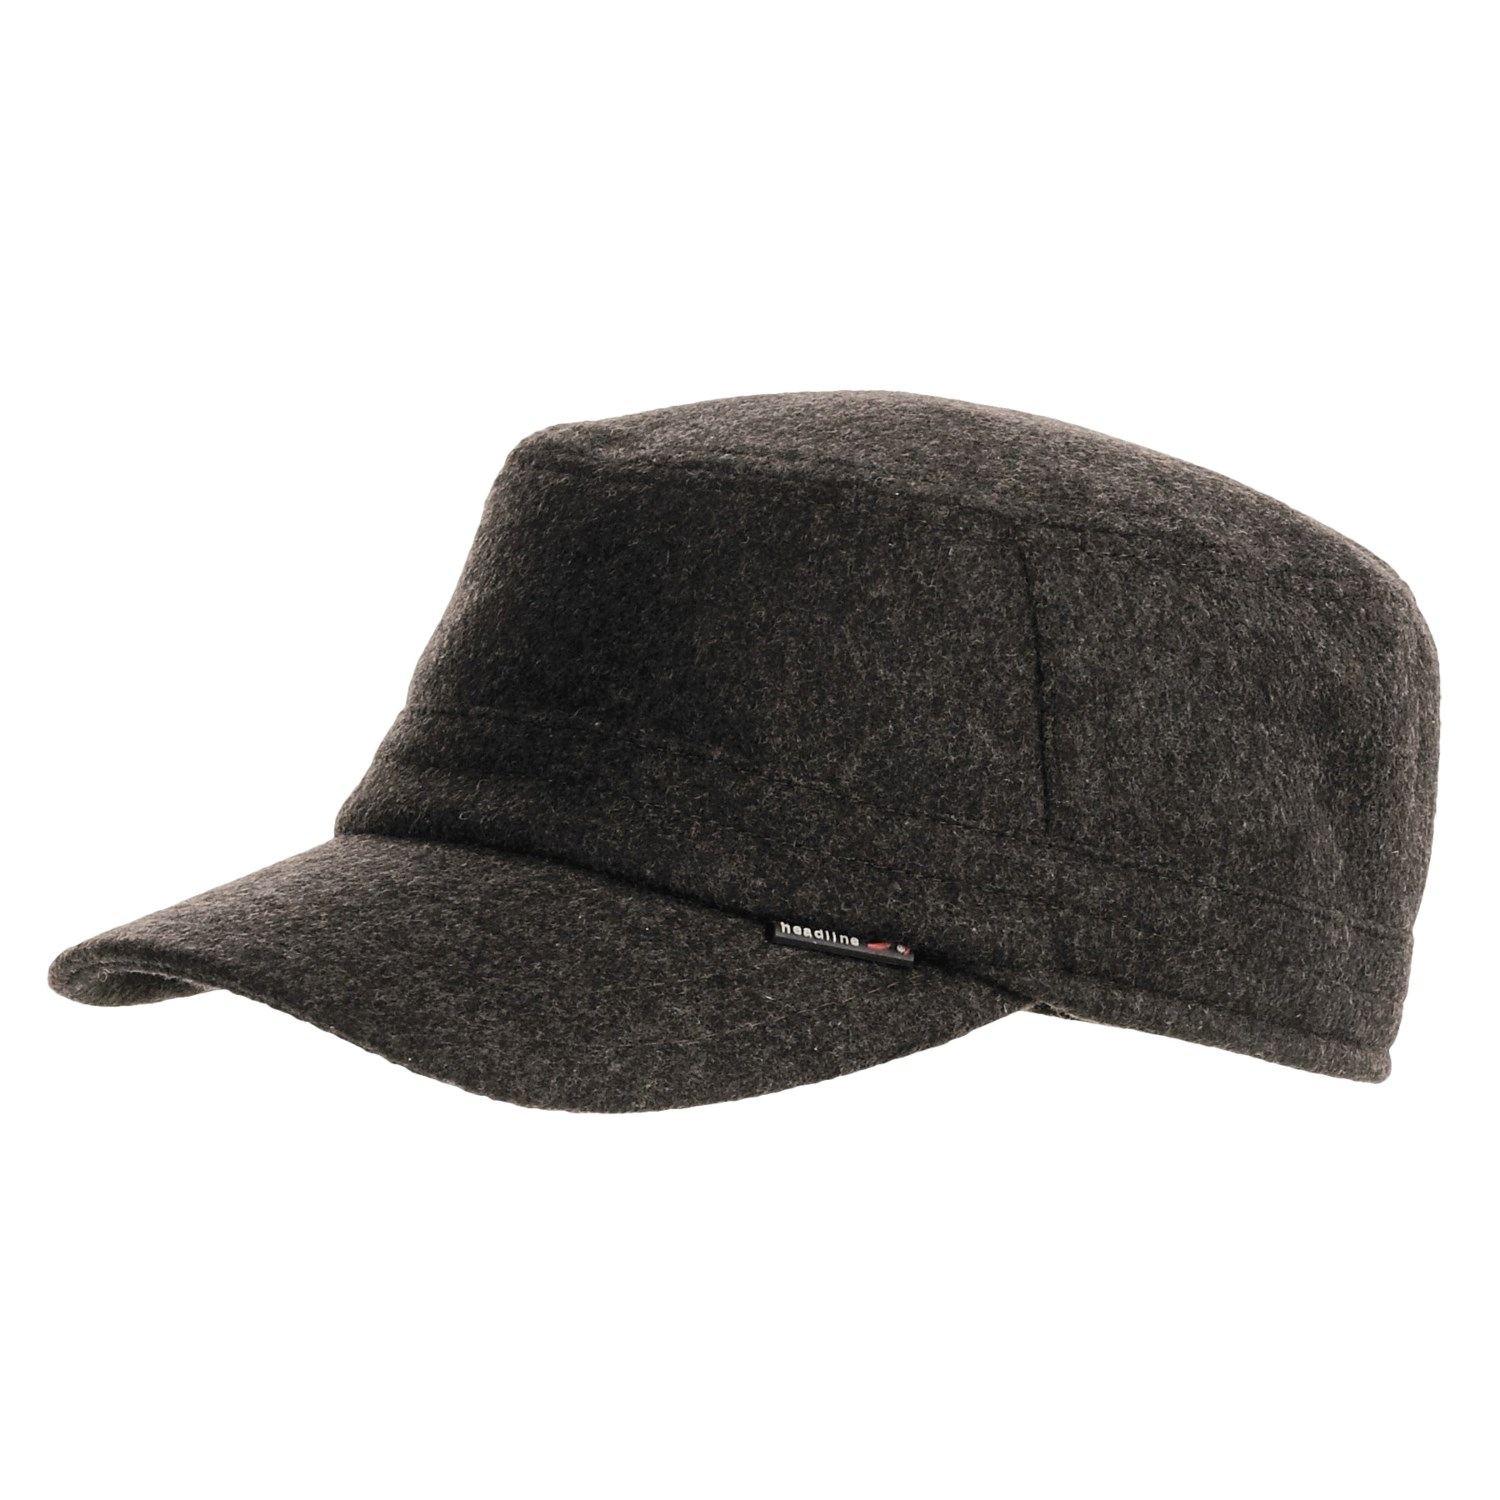 Free shipping BOTH ways on mens hats with ear flaps, from our vast selection of styles. Fast delivery, and 24/7/ real-person service with a smile. Click or call